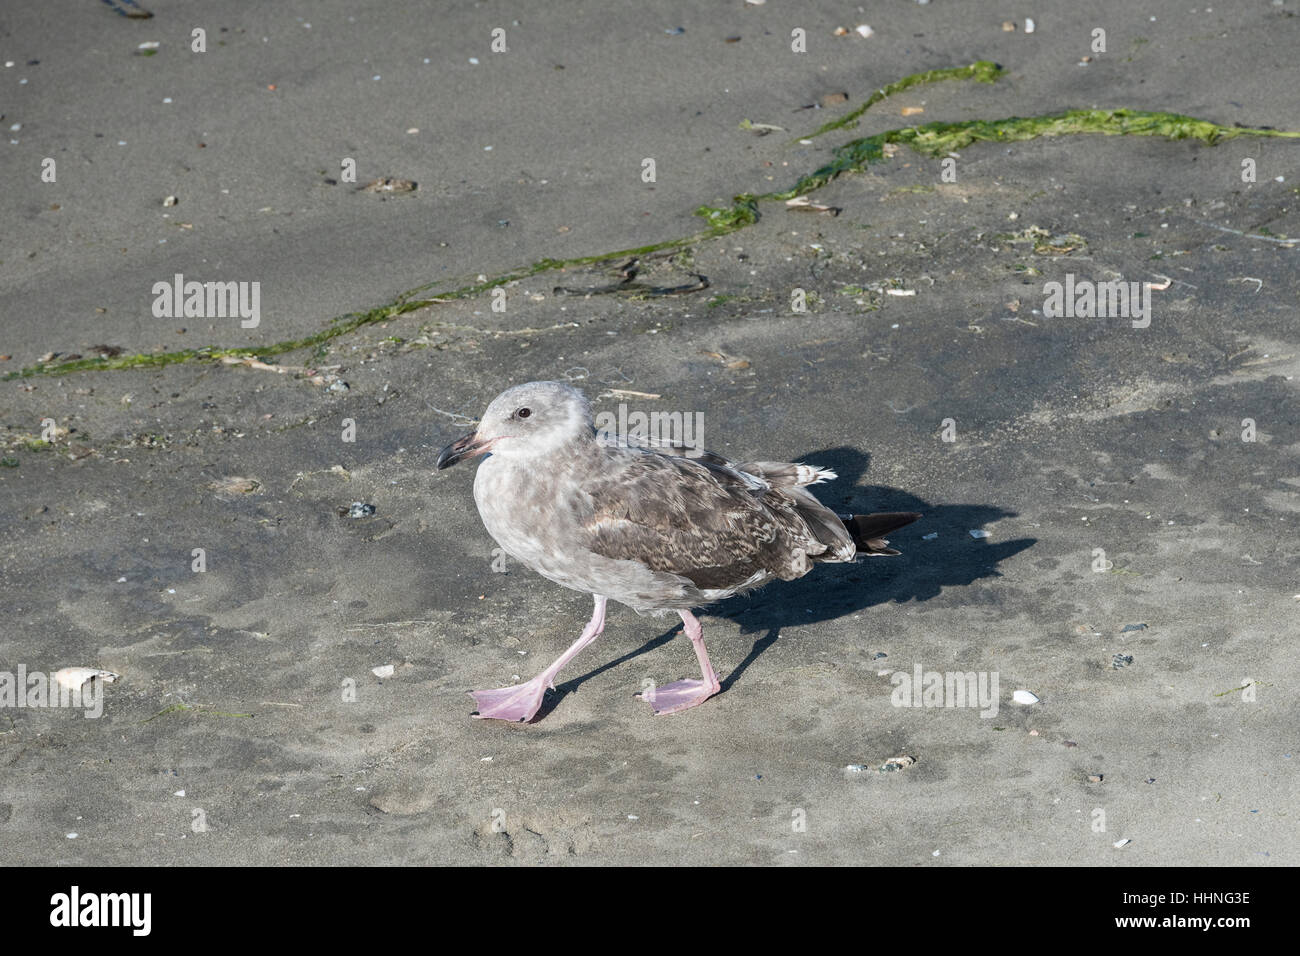 juvenile western gull, Larus occidentalis, Elkhorn Slough, Moss Landing, California, United States - Stock Image